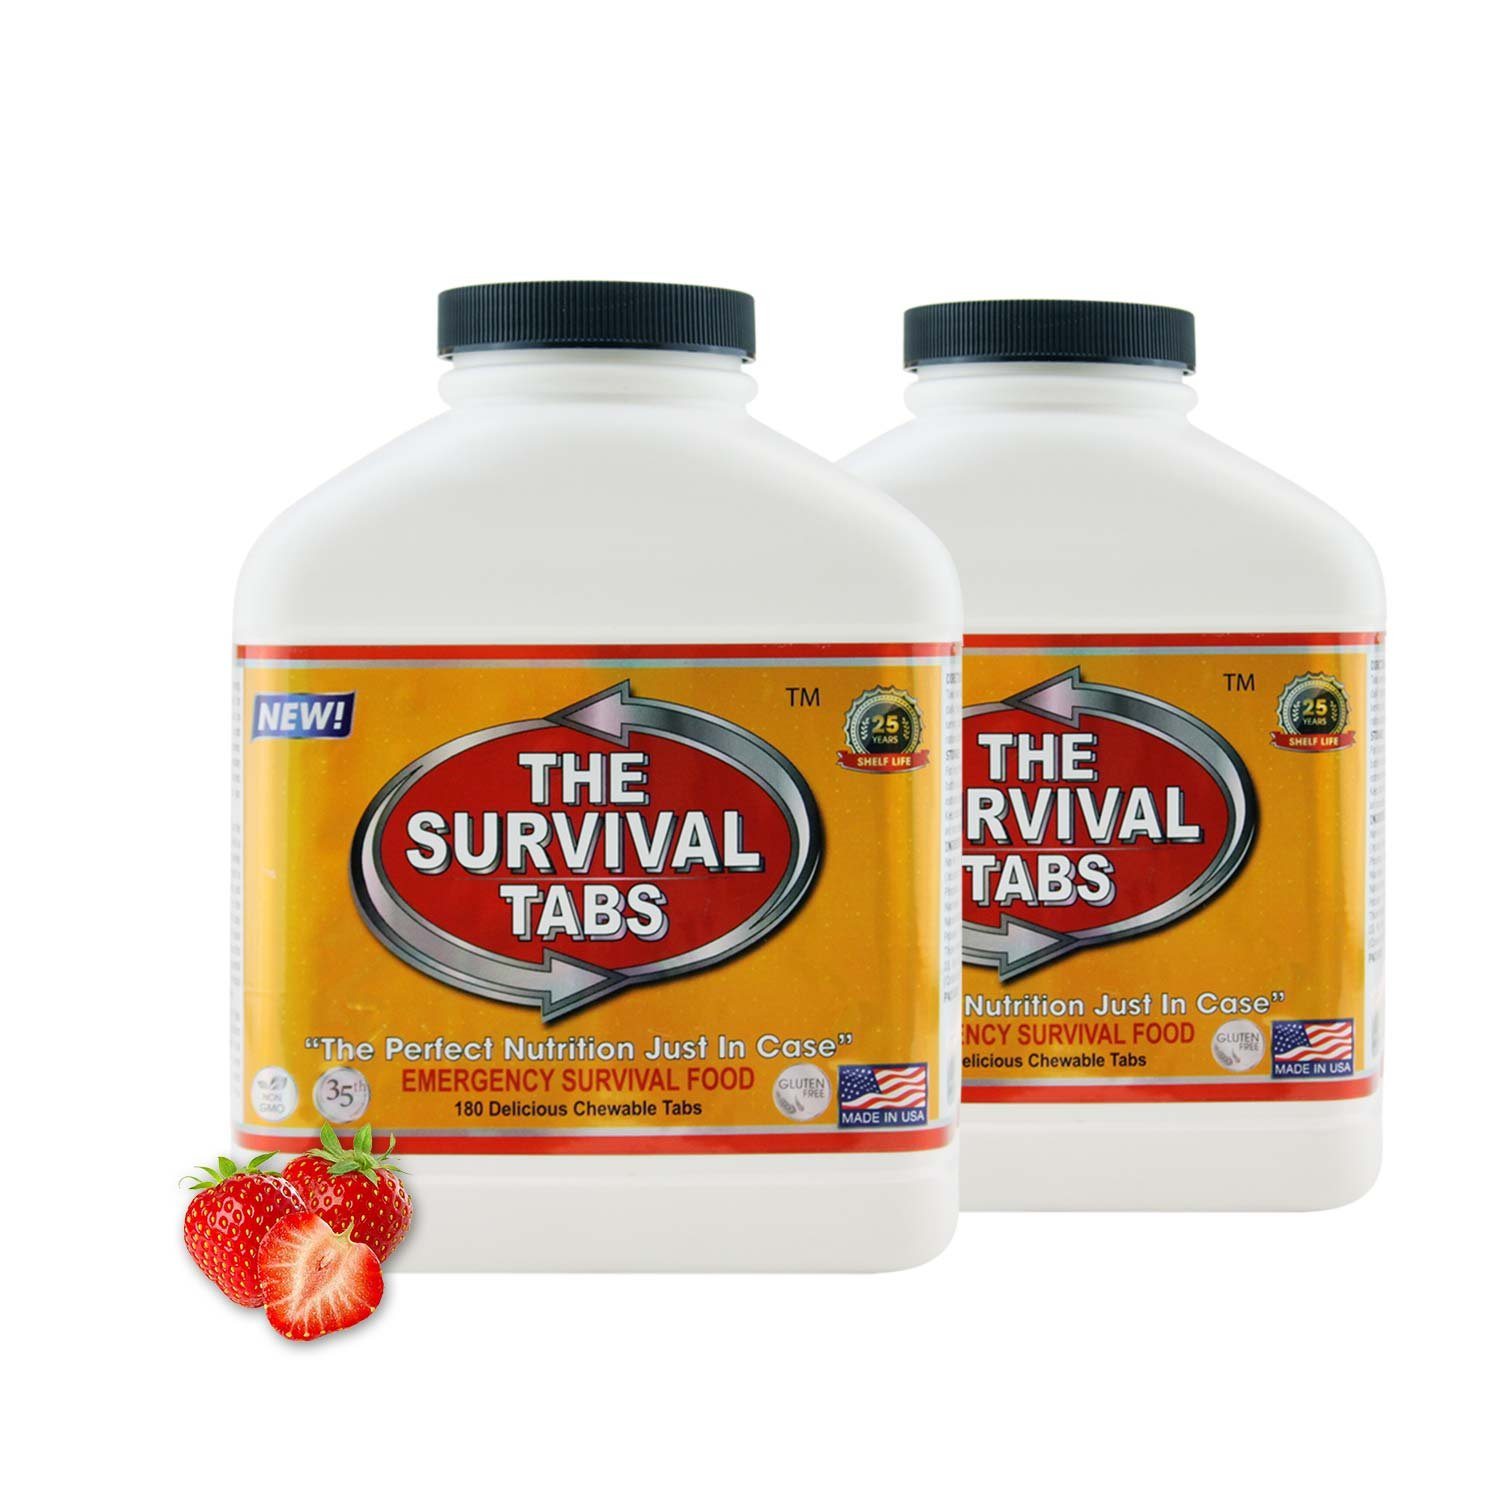 Survival Tabs 30-day Food Supply Emergency Food Ration 360 tabs Survival MREs for Disaster Preparedness for Earthquake Flood Tsunami Gluten Free and Non-GMO 25 Years Shelf Life - Strawberry Flavor by LB1 High Performance